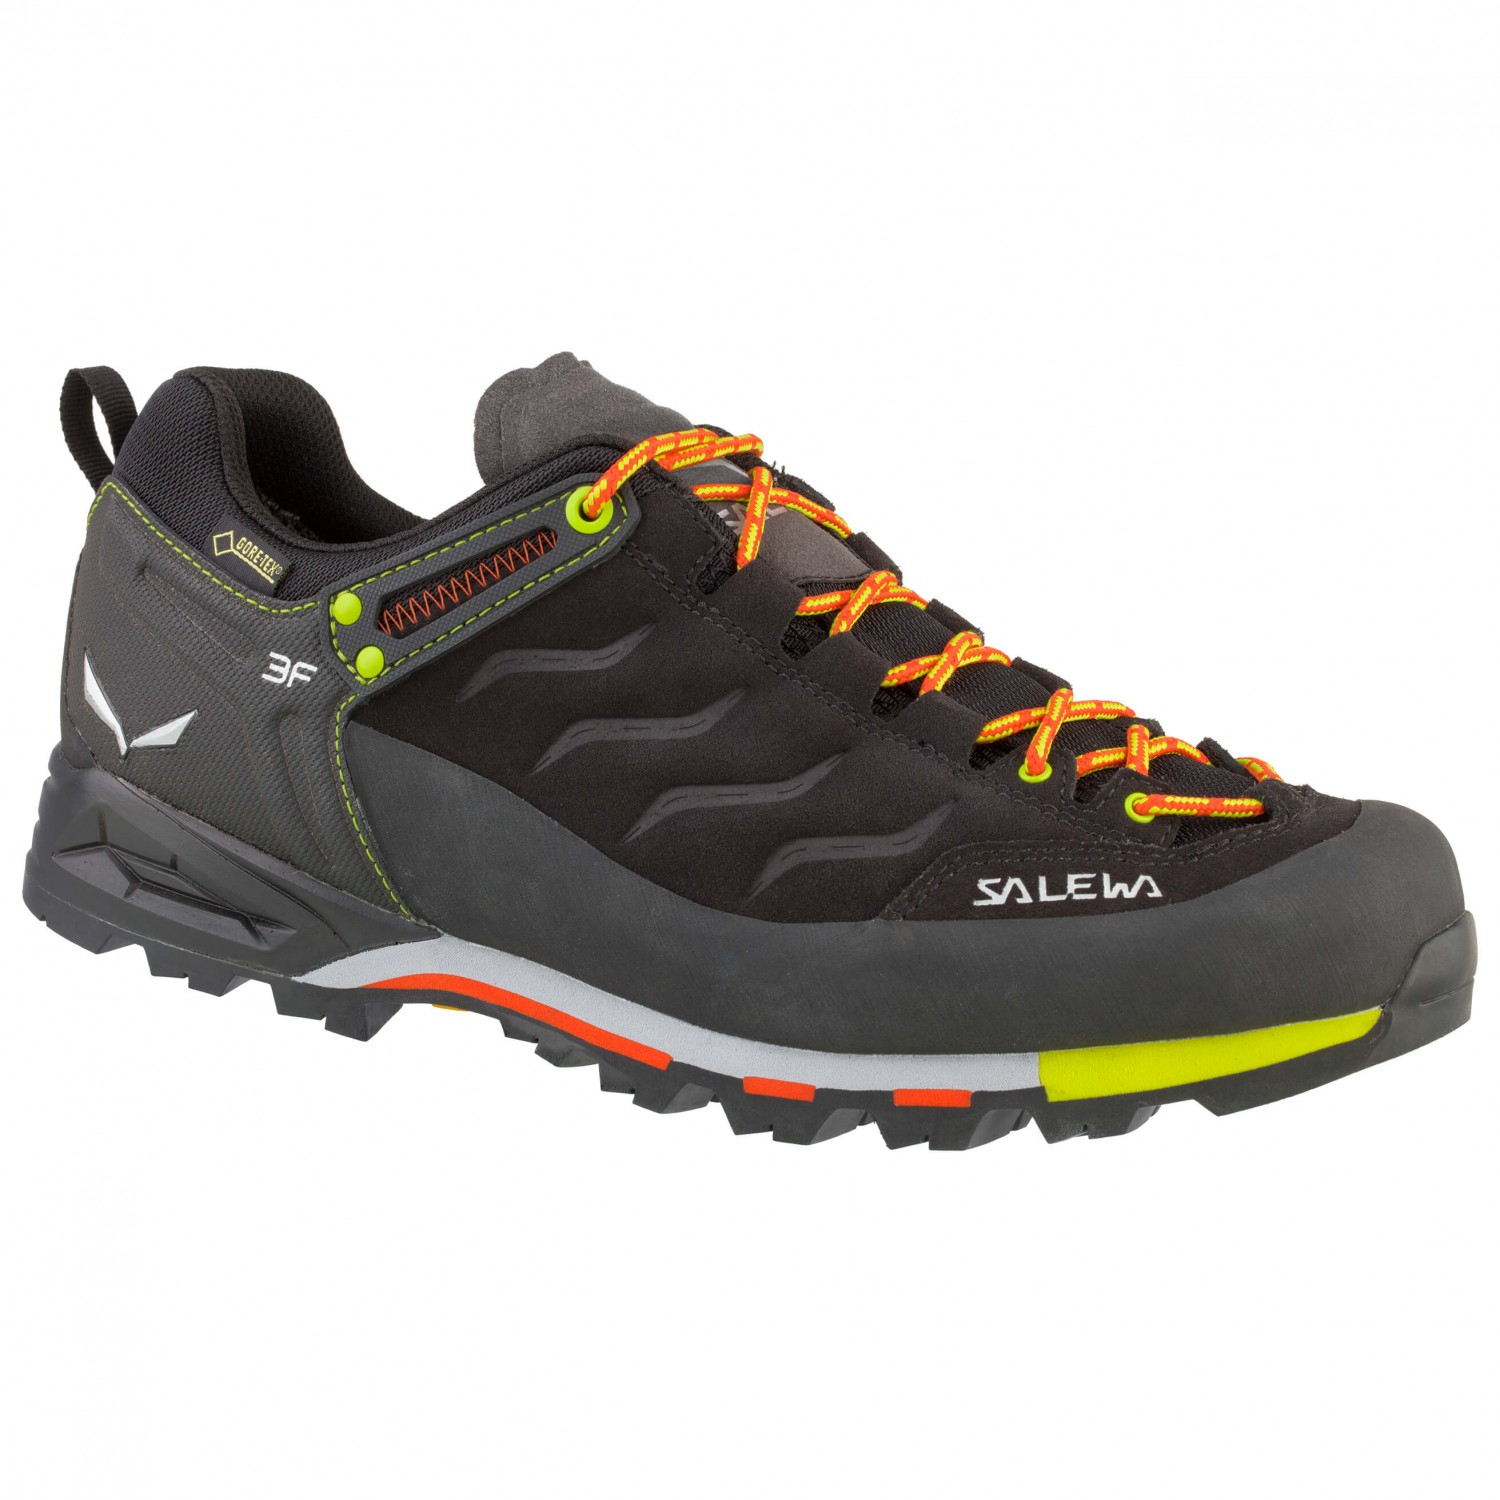 salewa mtn trainer gtx approach shoes men 39 s free uk. Black Bedroom Furniture Sets. Home Design Ideas